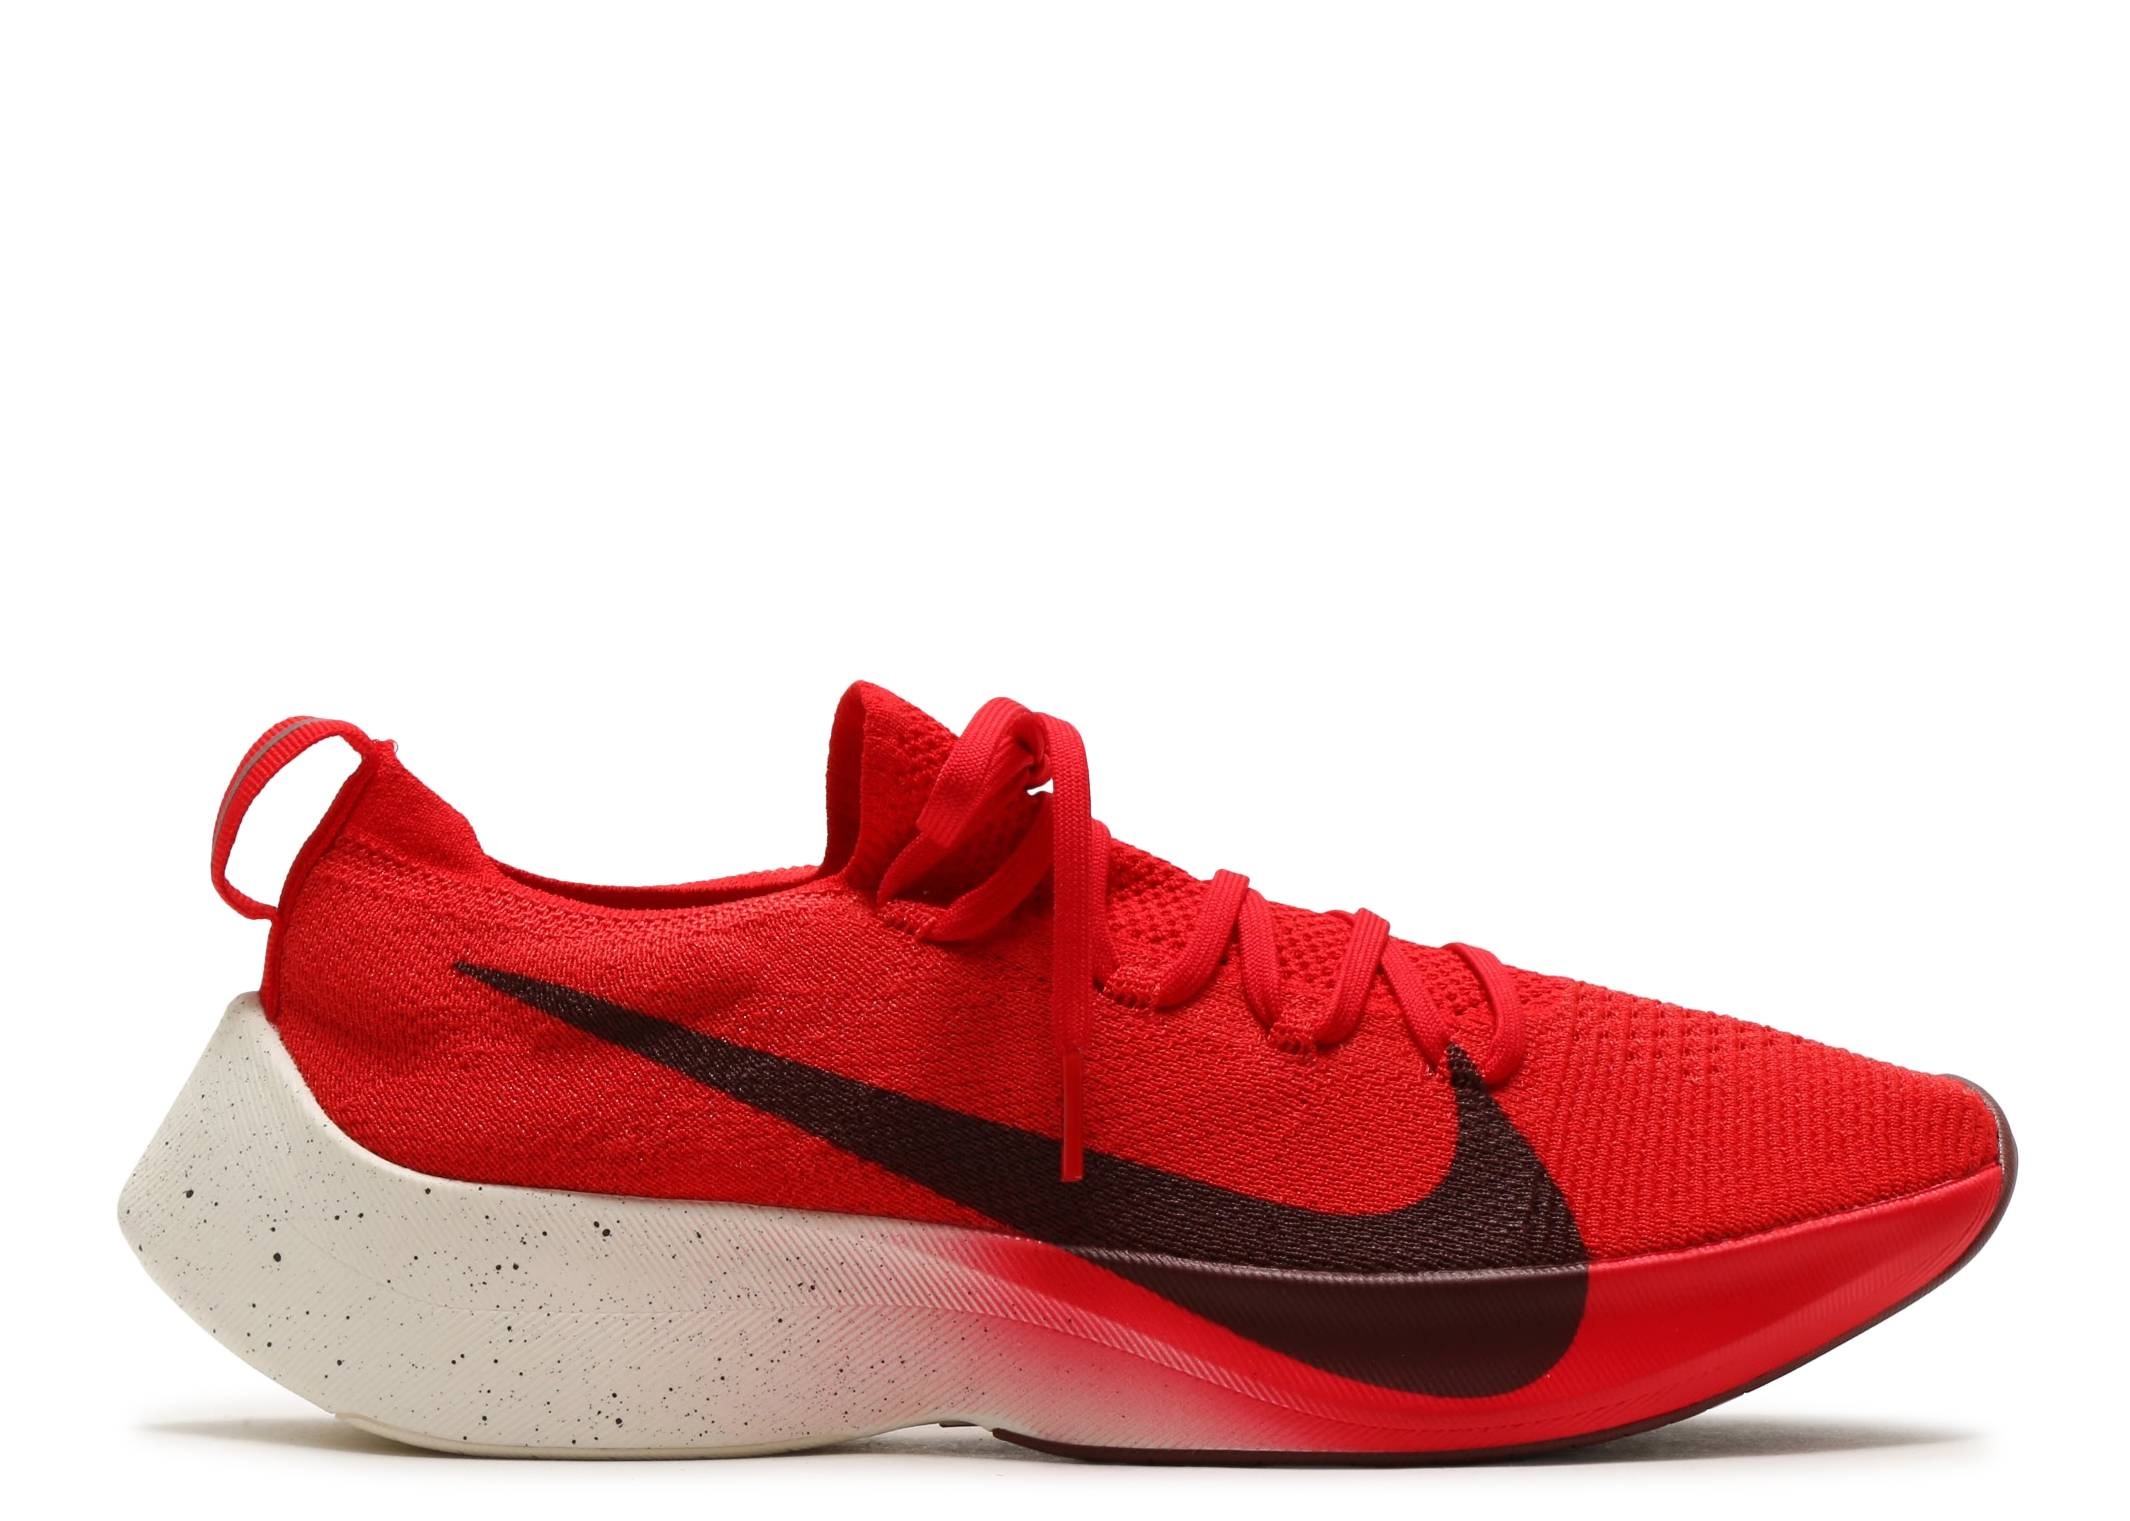 b4953c2e126 Vapor Street Flyknit - Nike - aq1763 600 - university red dark team ...